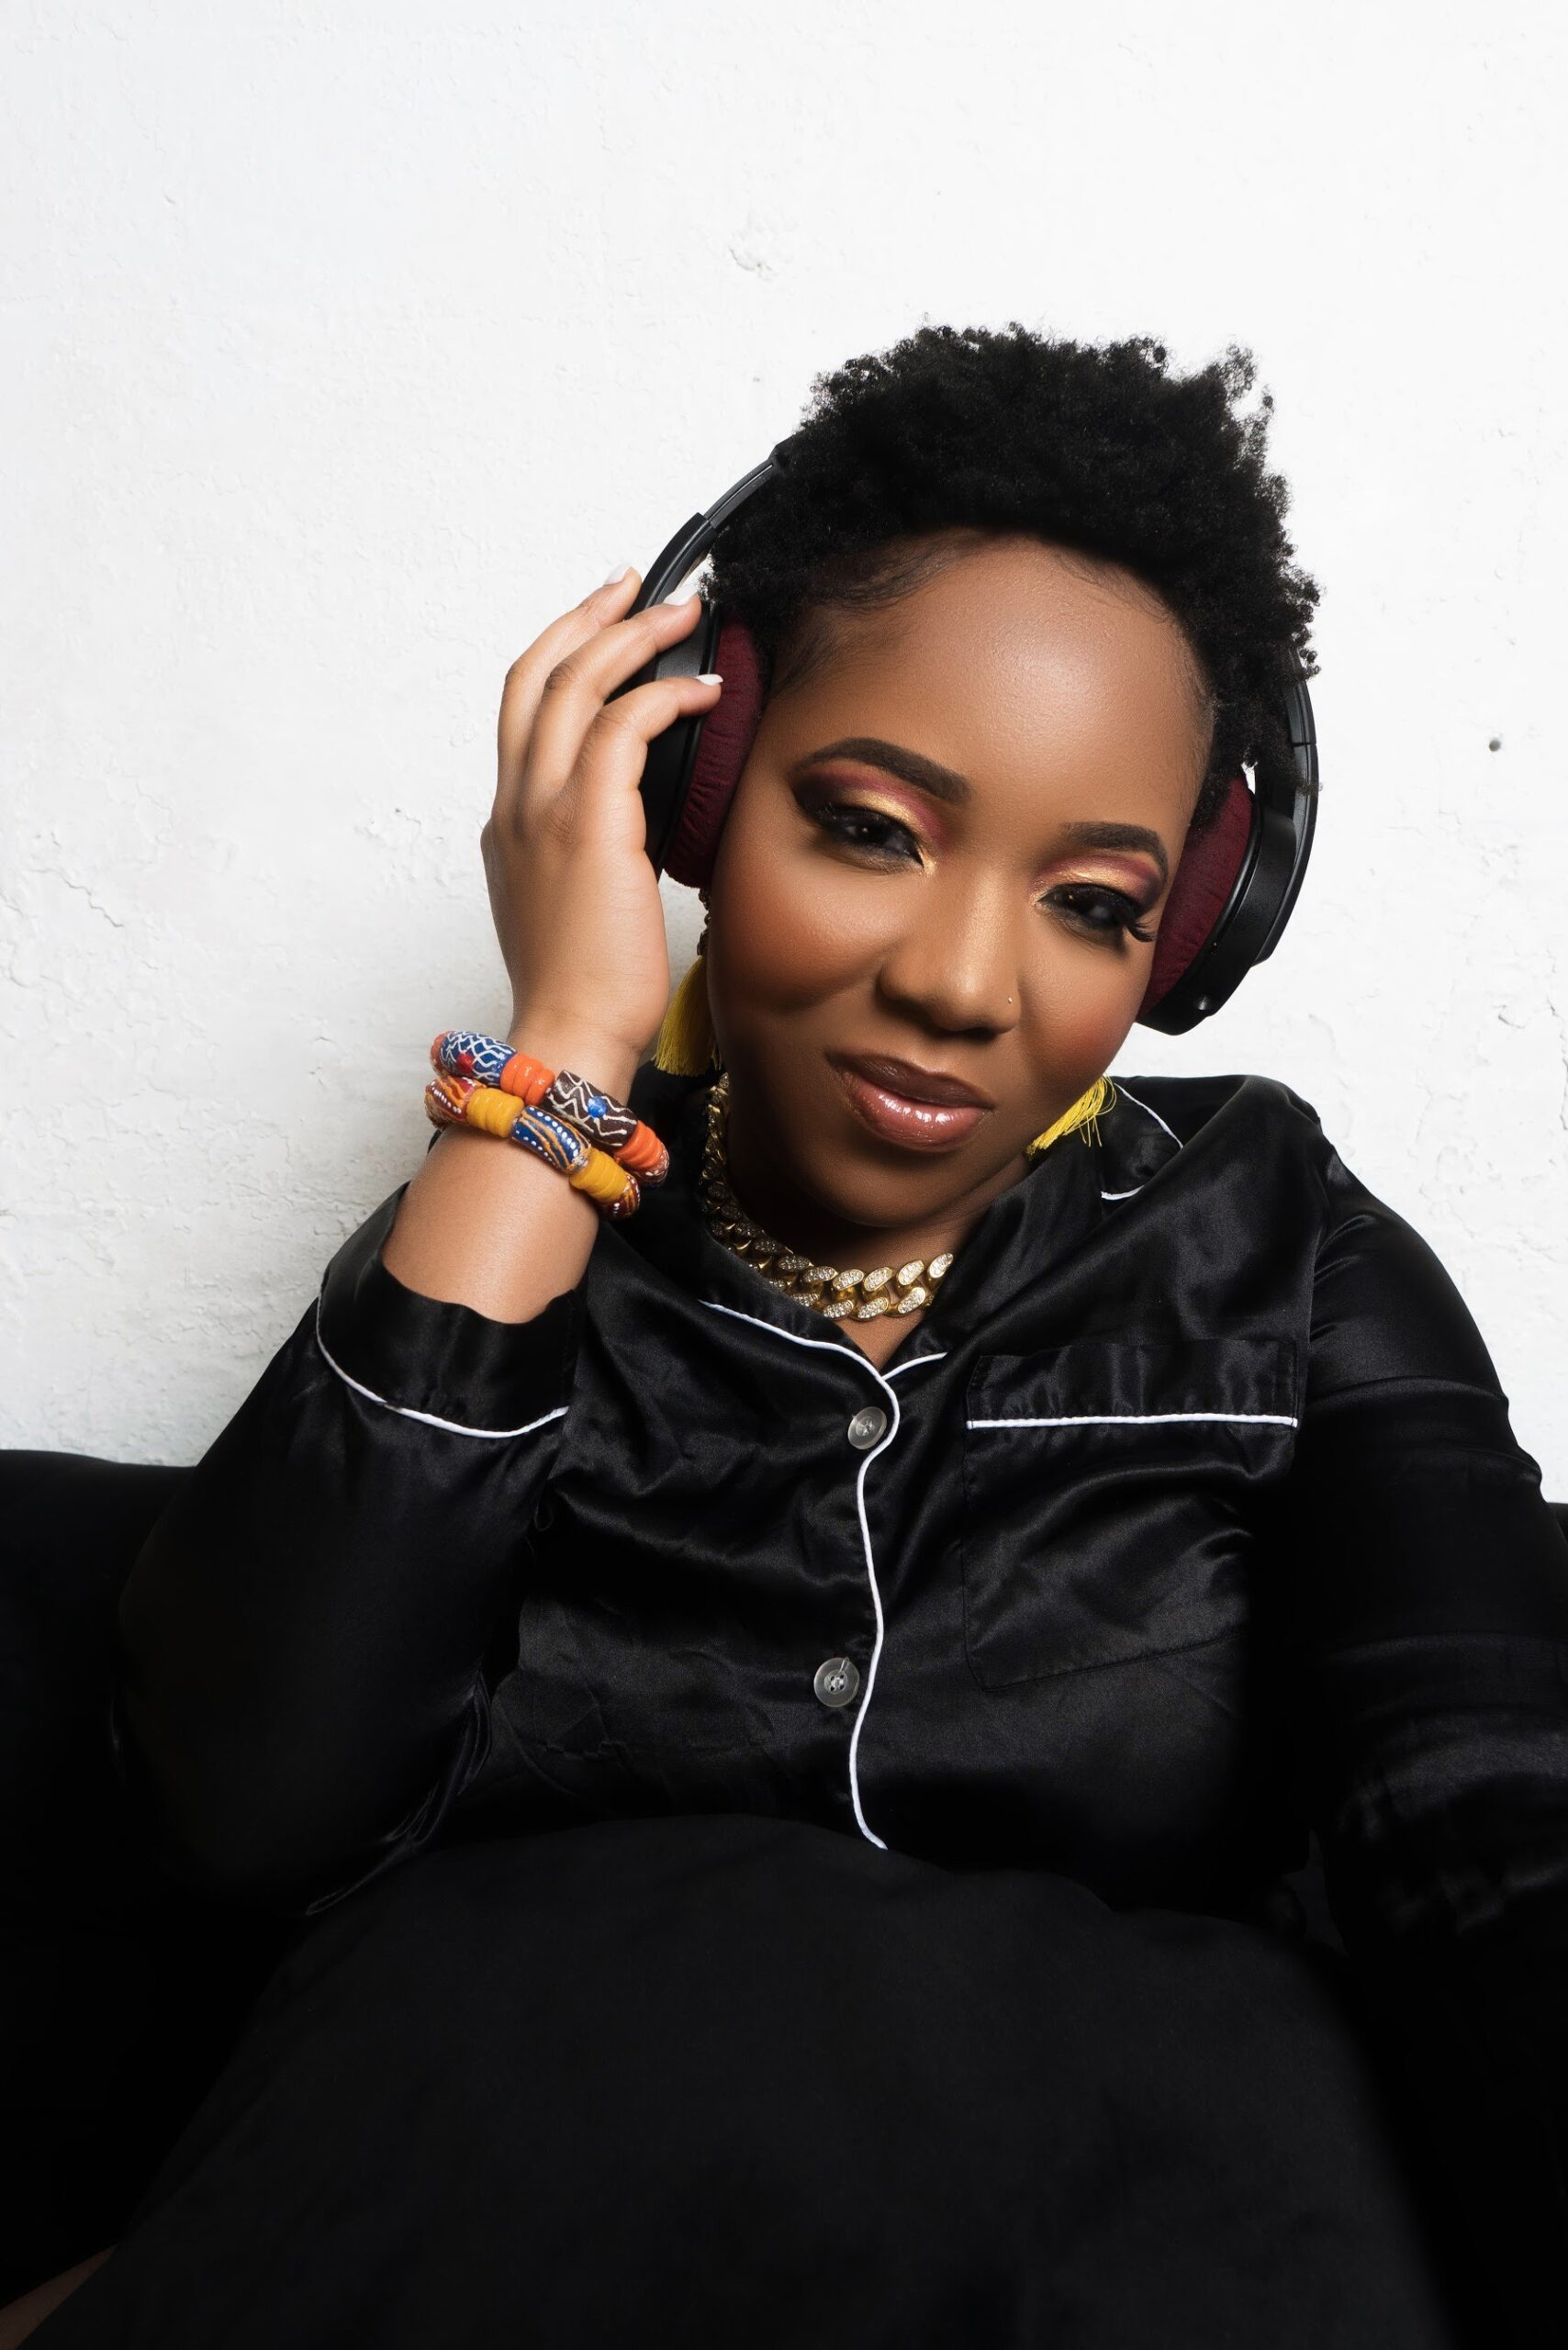 Meet Cece: The Music Business Executive Uplifting Women and Empowering Upcoming Talents